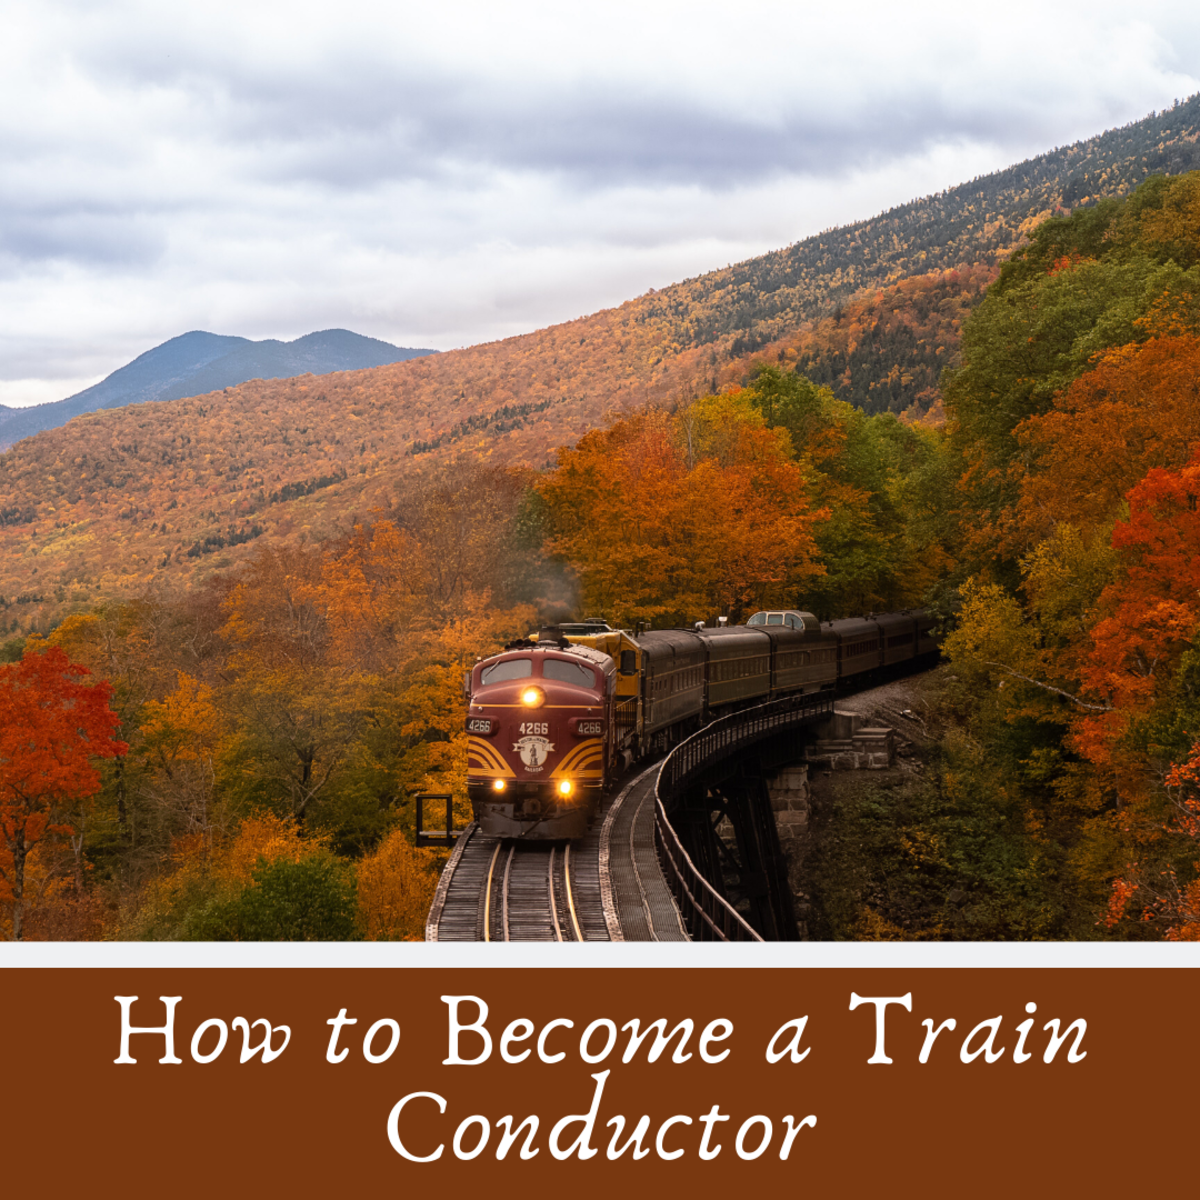 How to Become a Train Conductor for CN